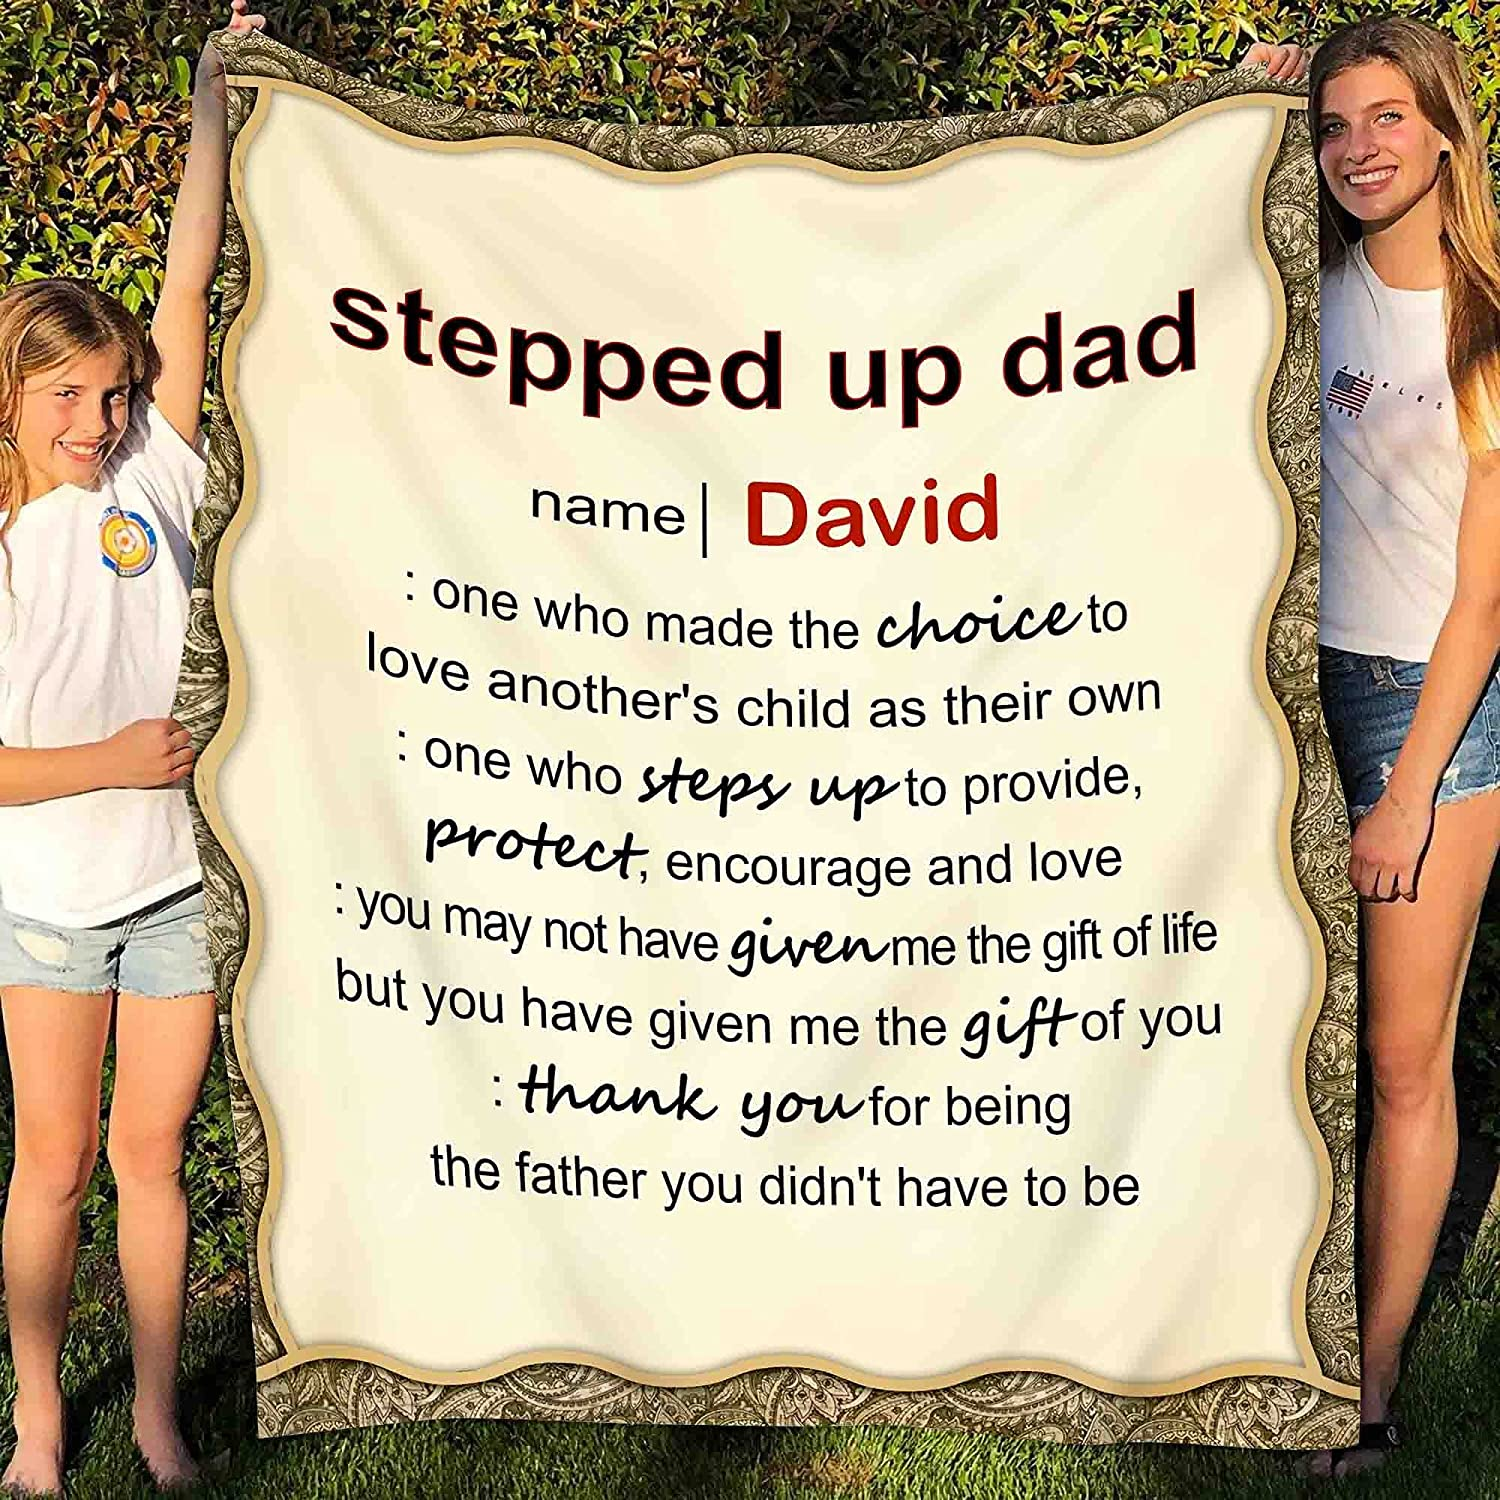 Personalized Stepped Up Dad Blanket, Gift For Step Dad, Bonus Dad Blanket, Step Dad Blanket, Stepdad Father Gift, Bonus Dad Birthday Gift Custom Fleece Sherpa Blanket